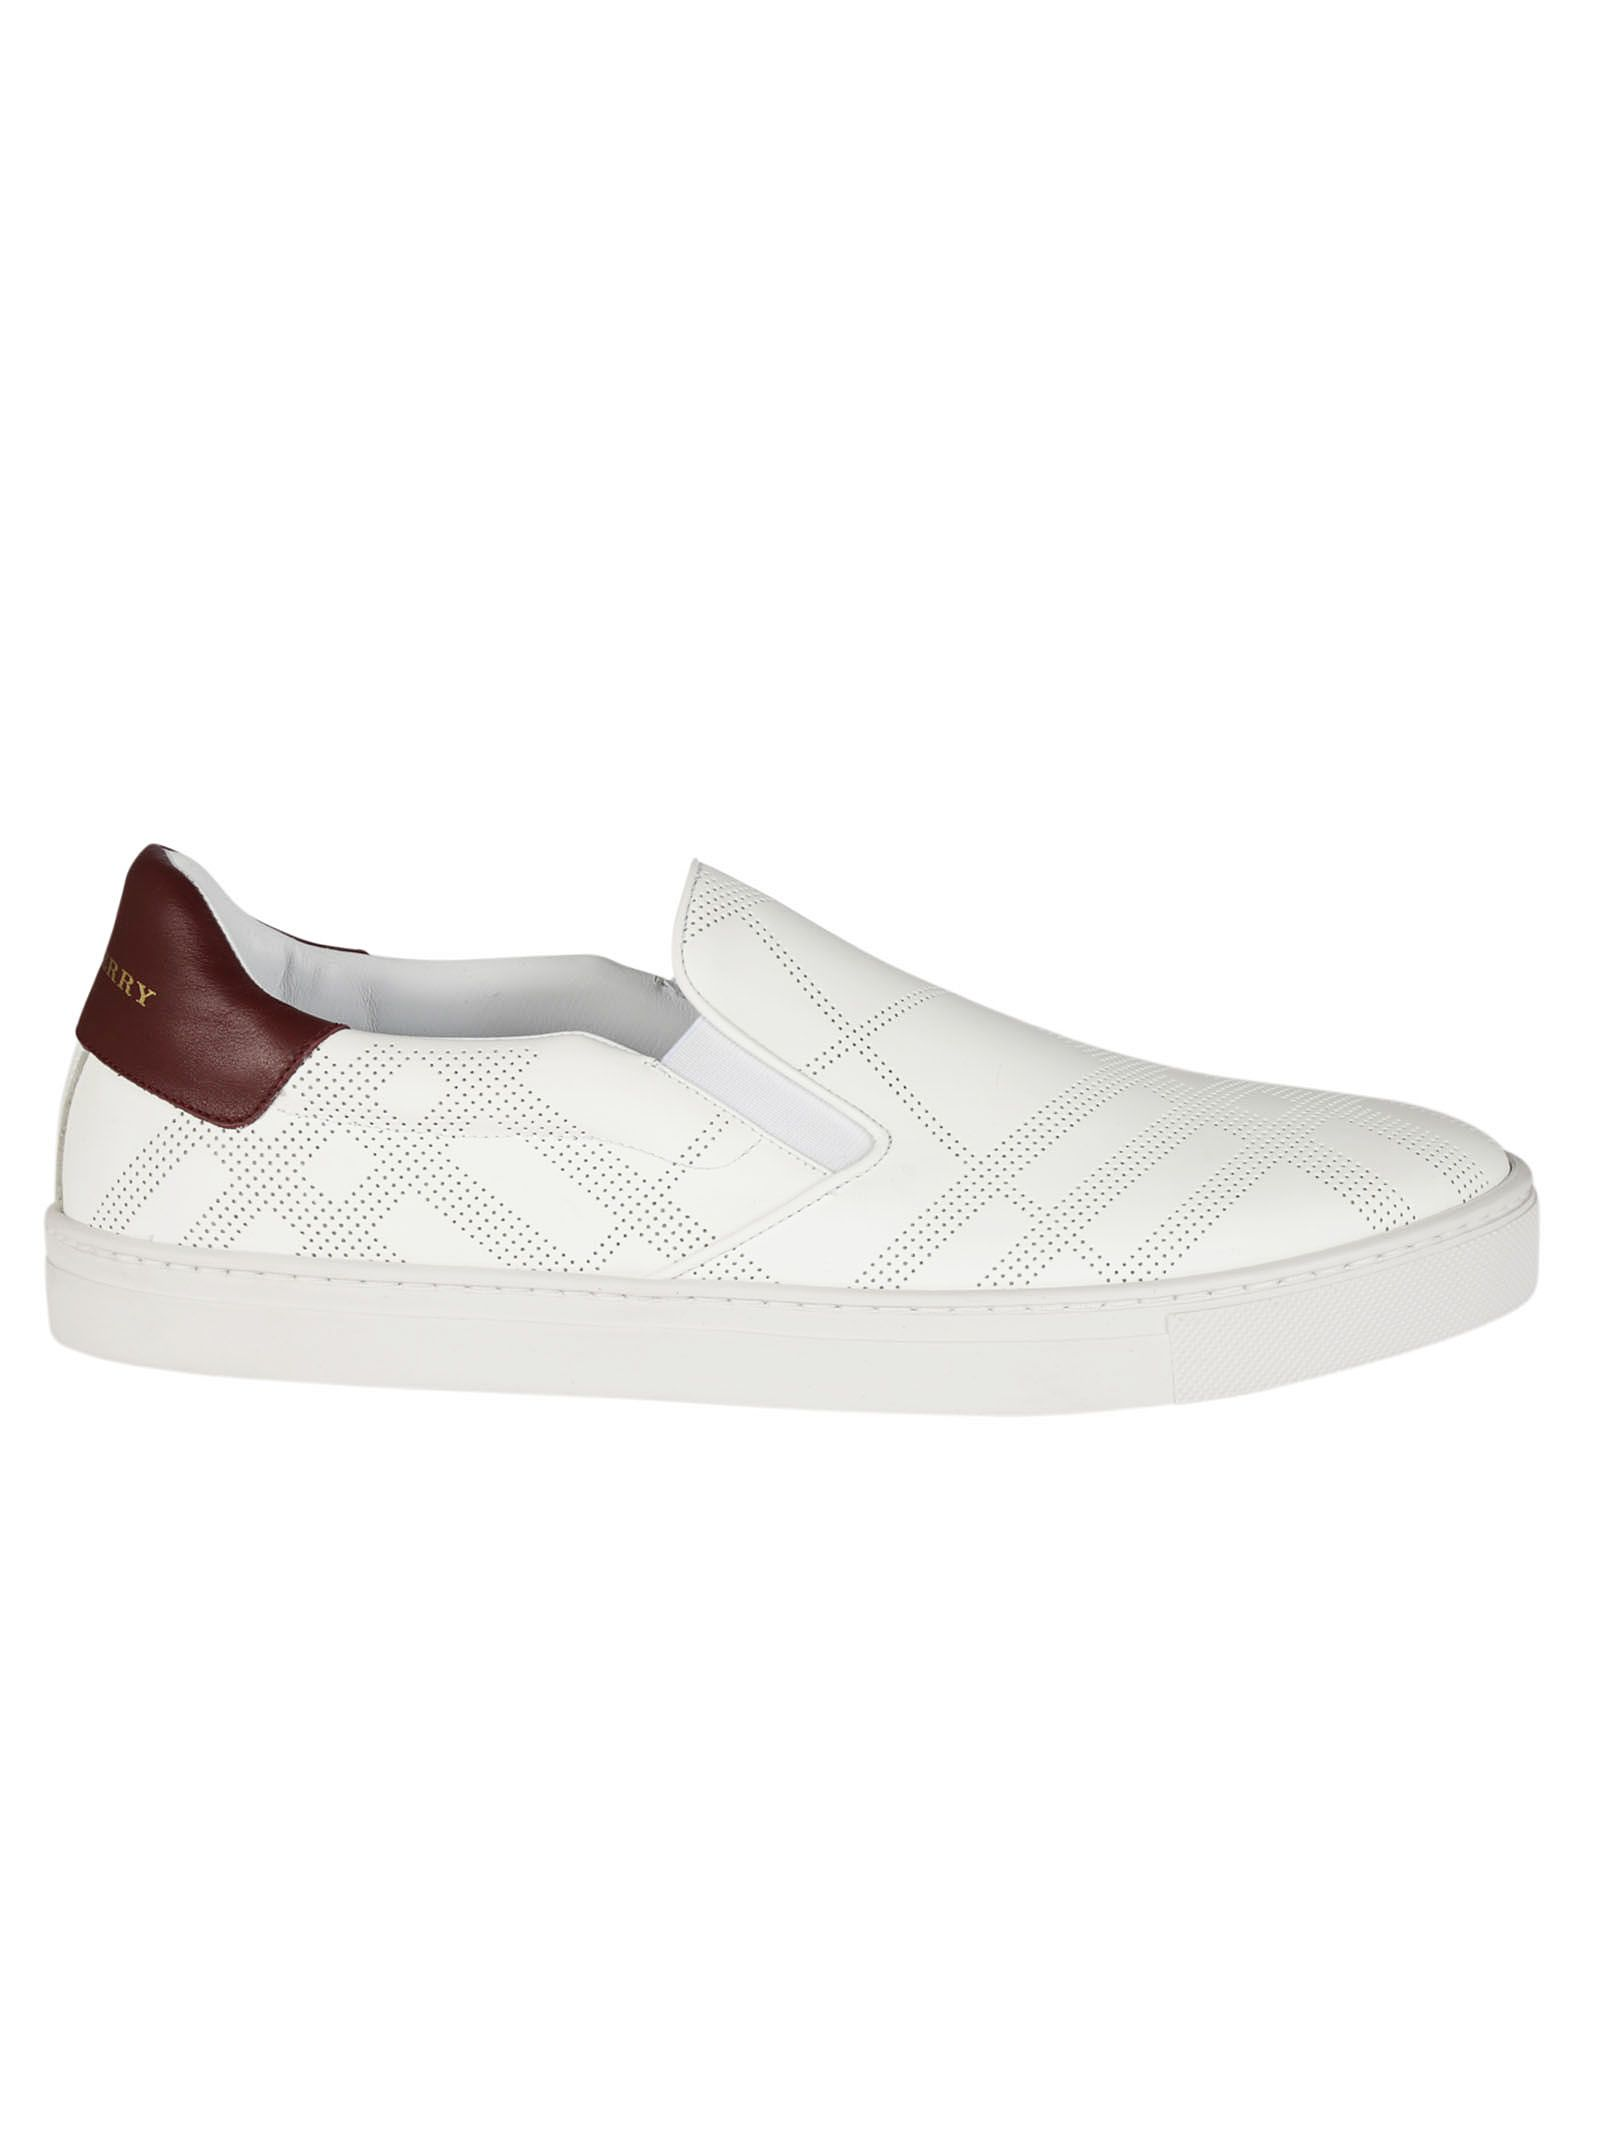 Burberry Copford Check Slip-on Sneakers